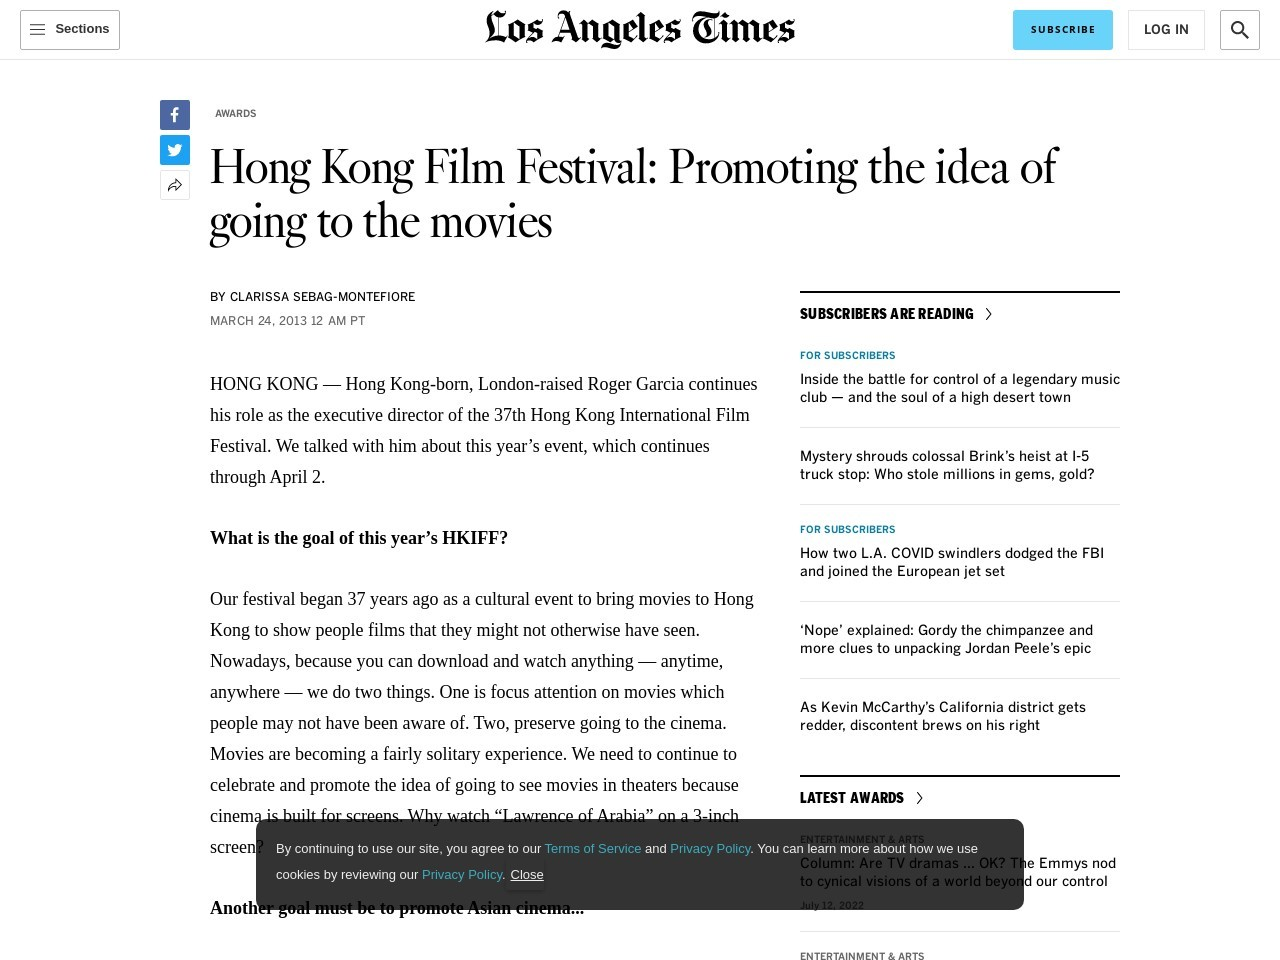 Hong Kong Film Festival: Promoting the idea of going to the movies